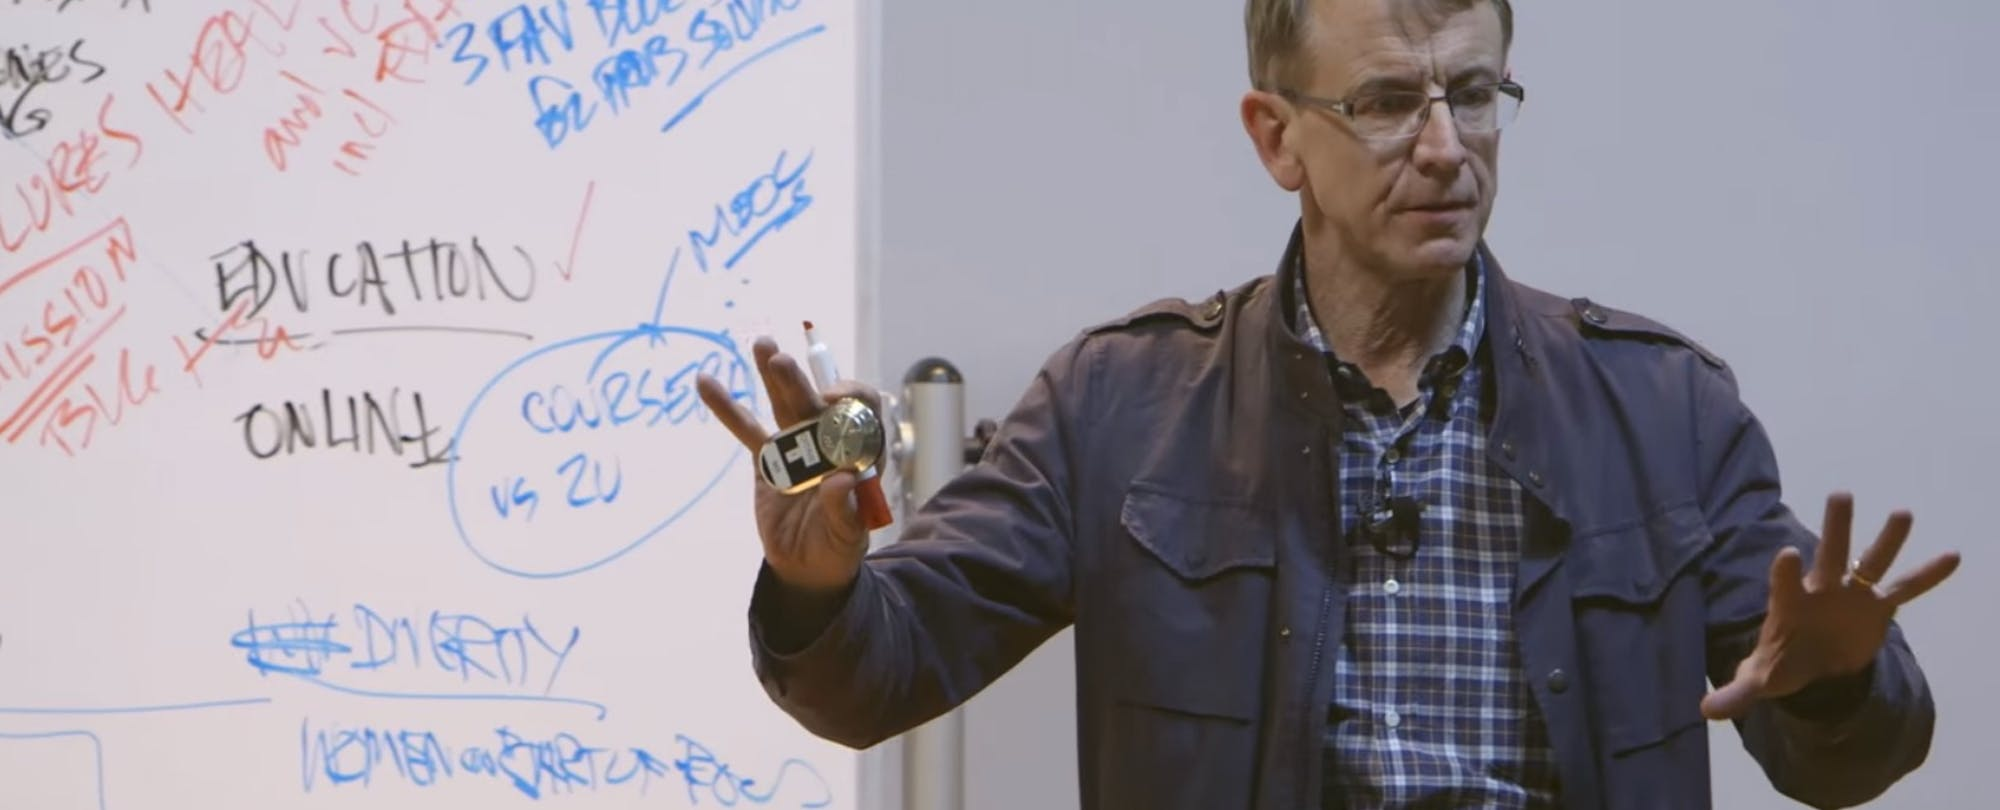 John Doerr's Passions and Cautions